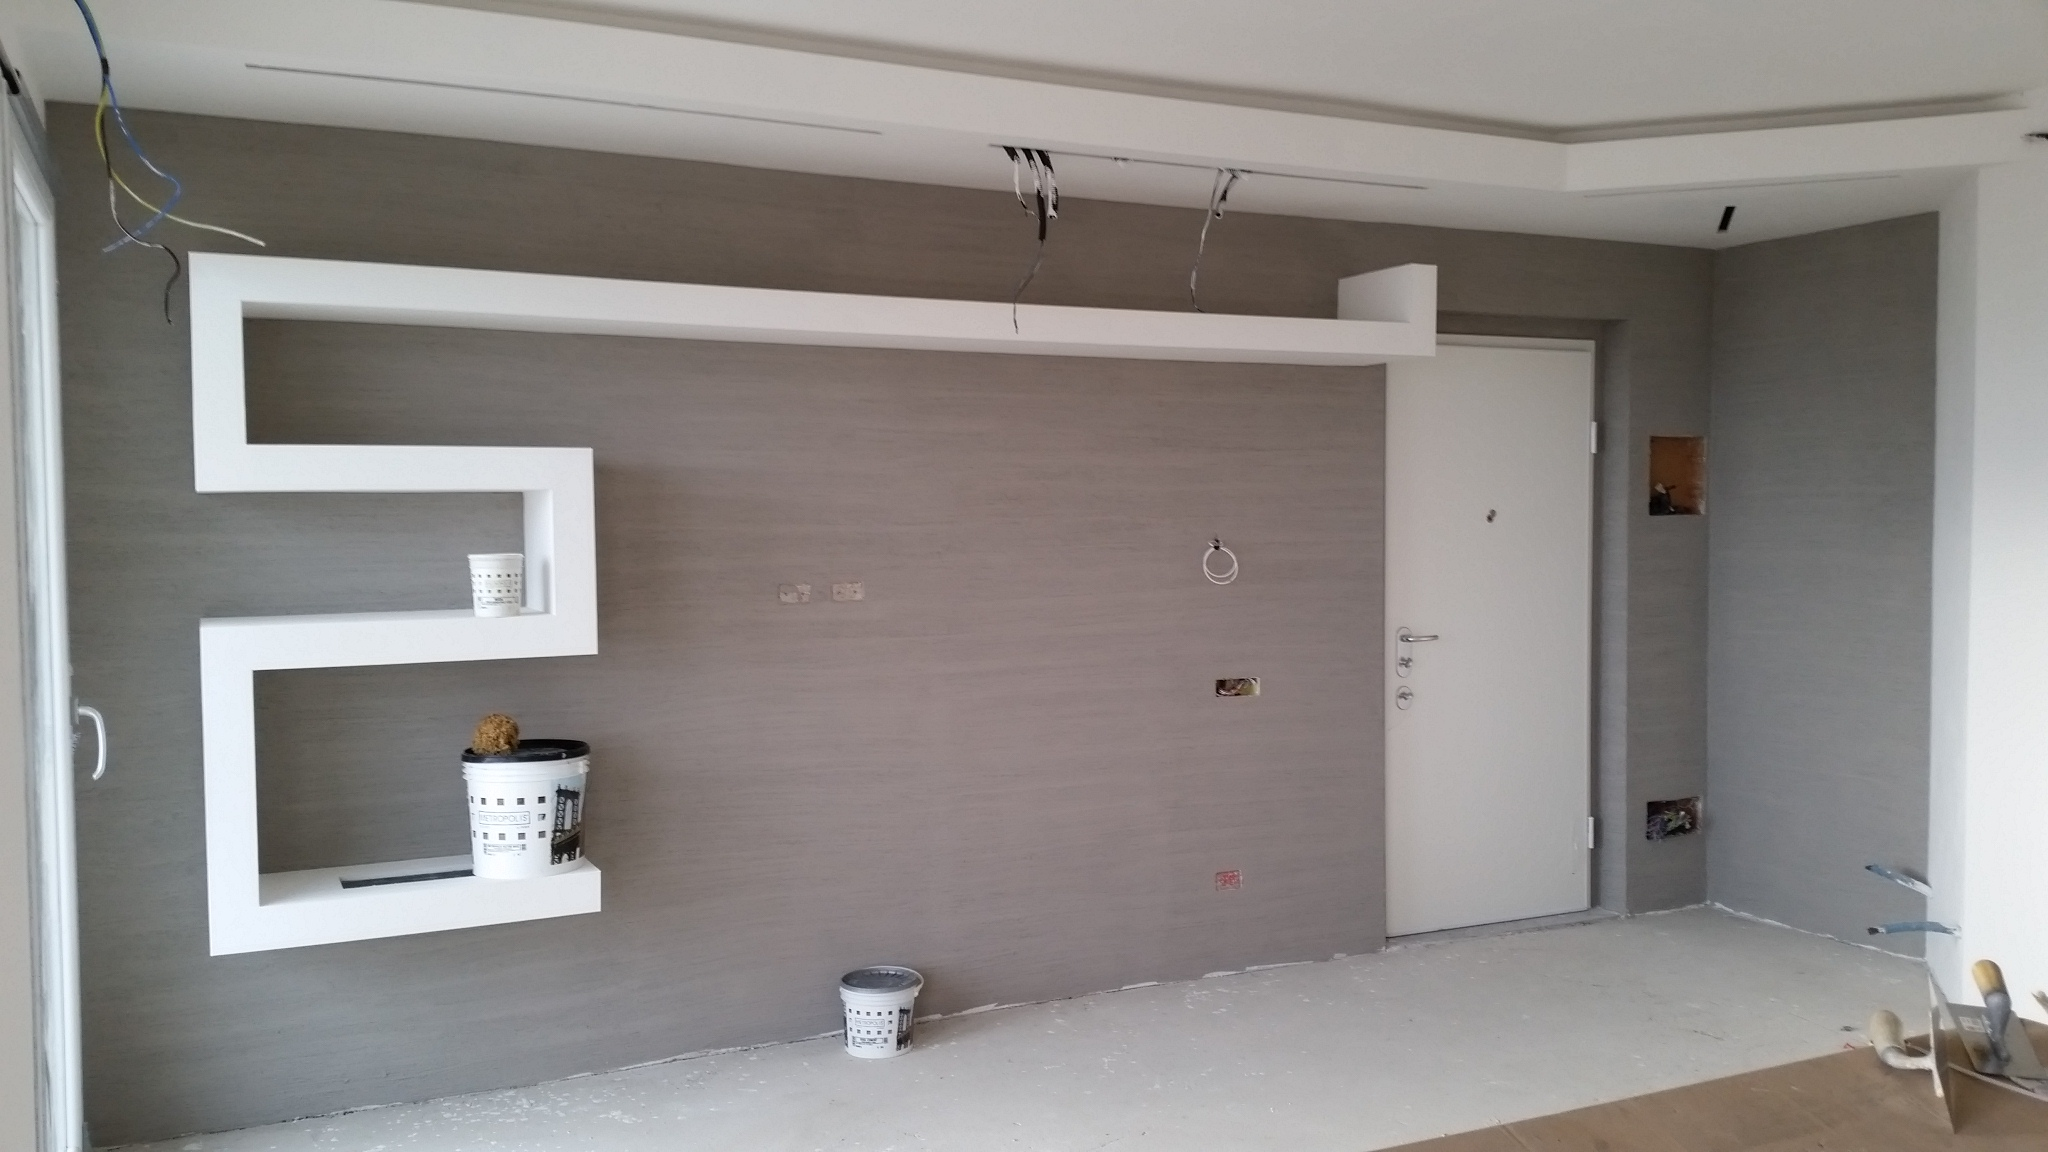 Cartongesso a soffitto ~ canlic for .